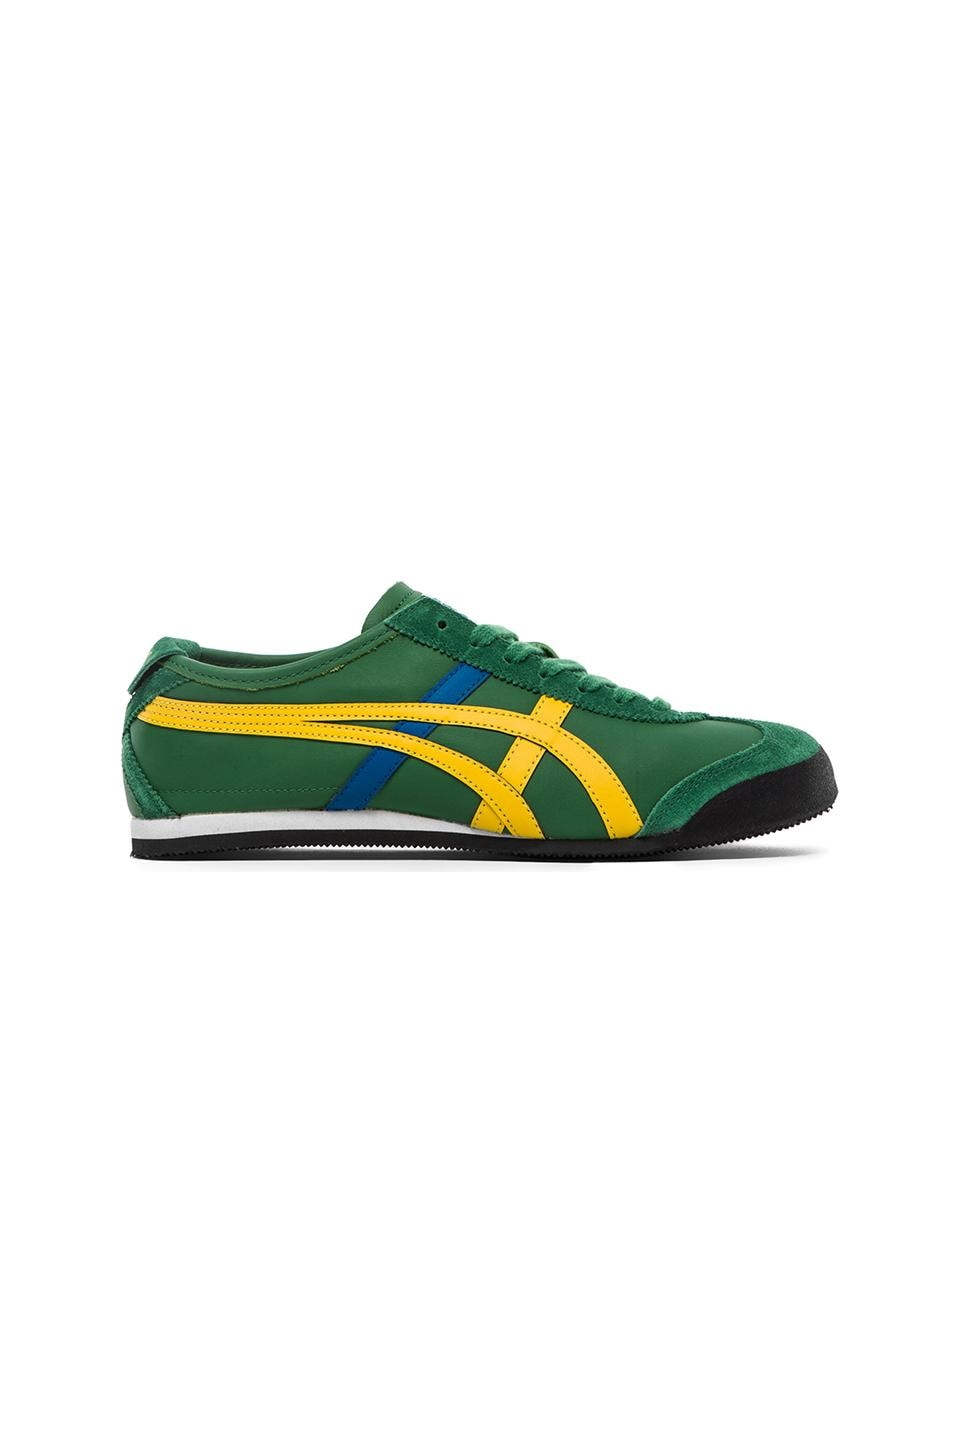 9359b1ef80469 Onitsuka Tiger Mexico 66 in Amazon Green & Yellow | REVOLVE